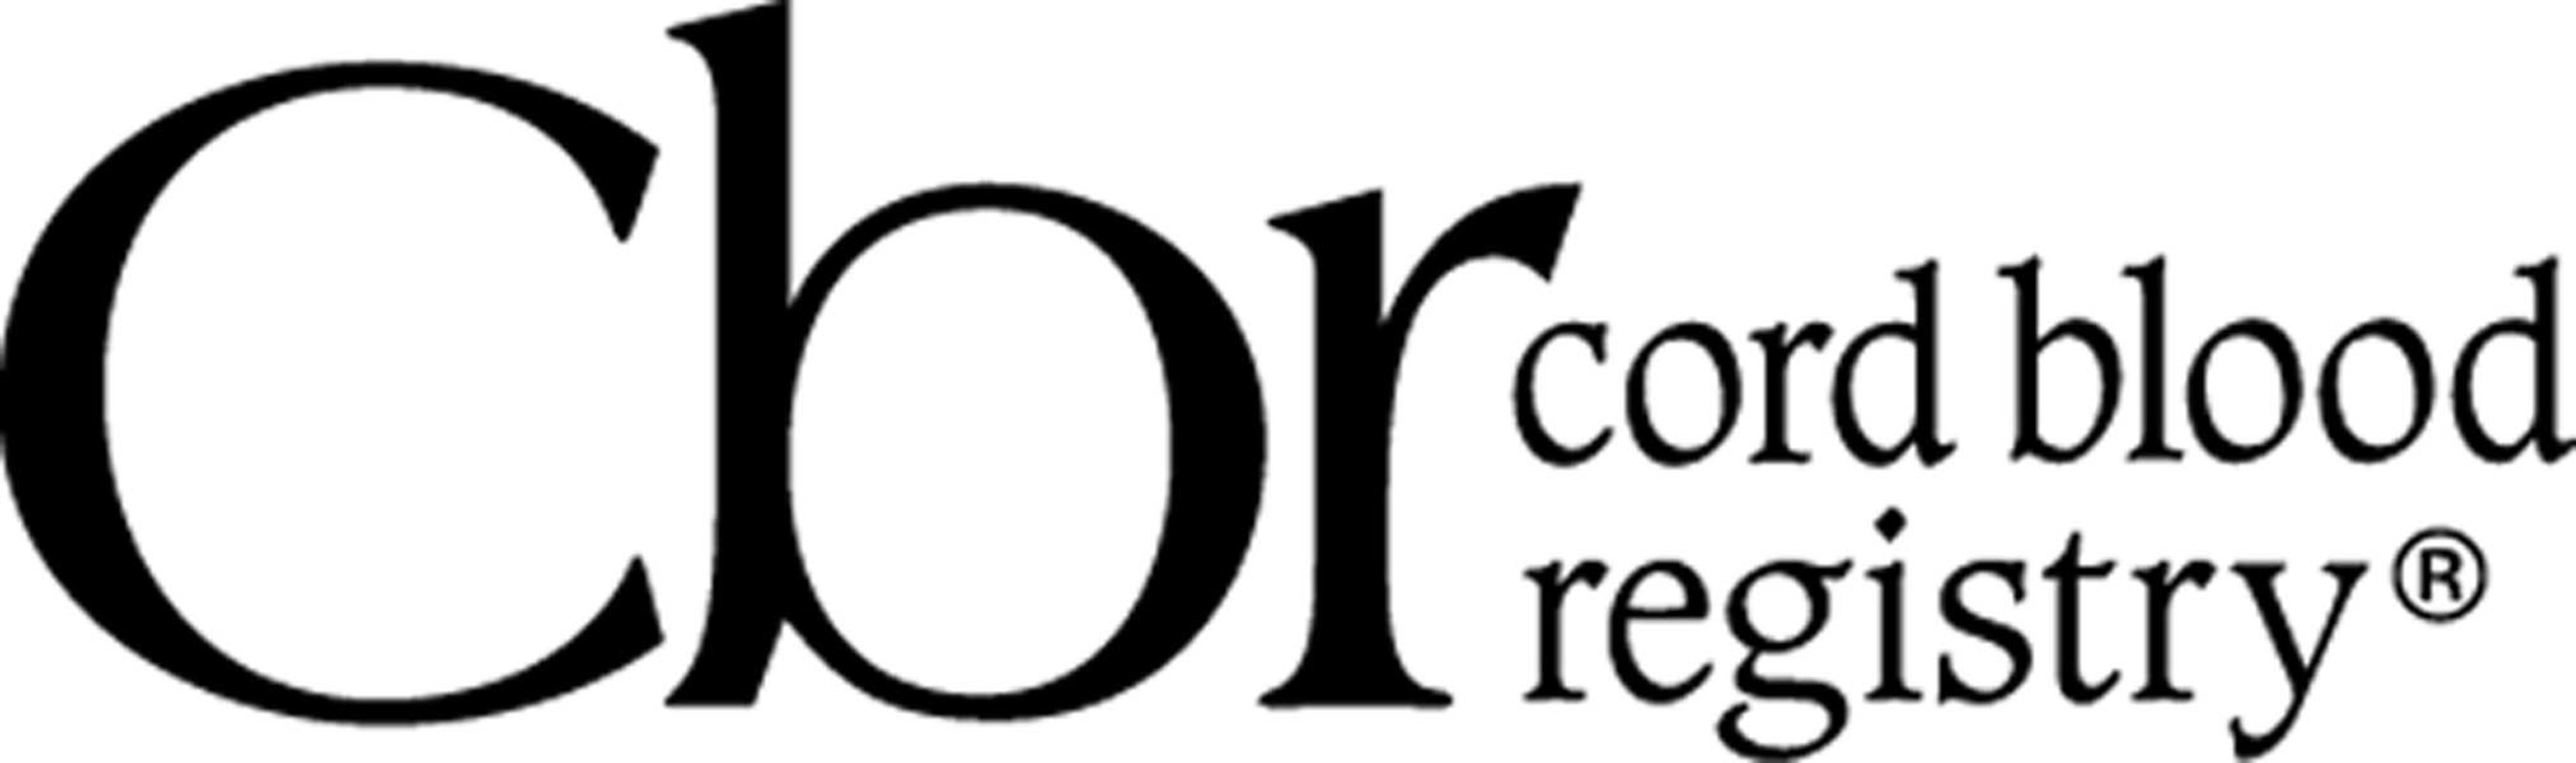 Cord Blood Registry logo